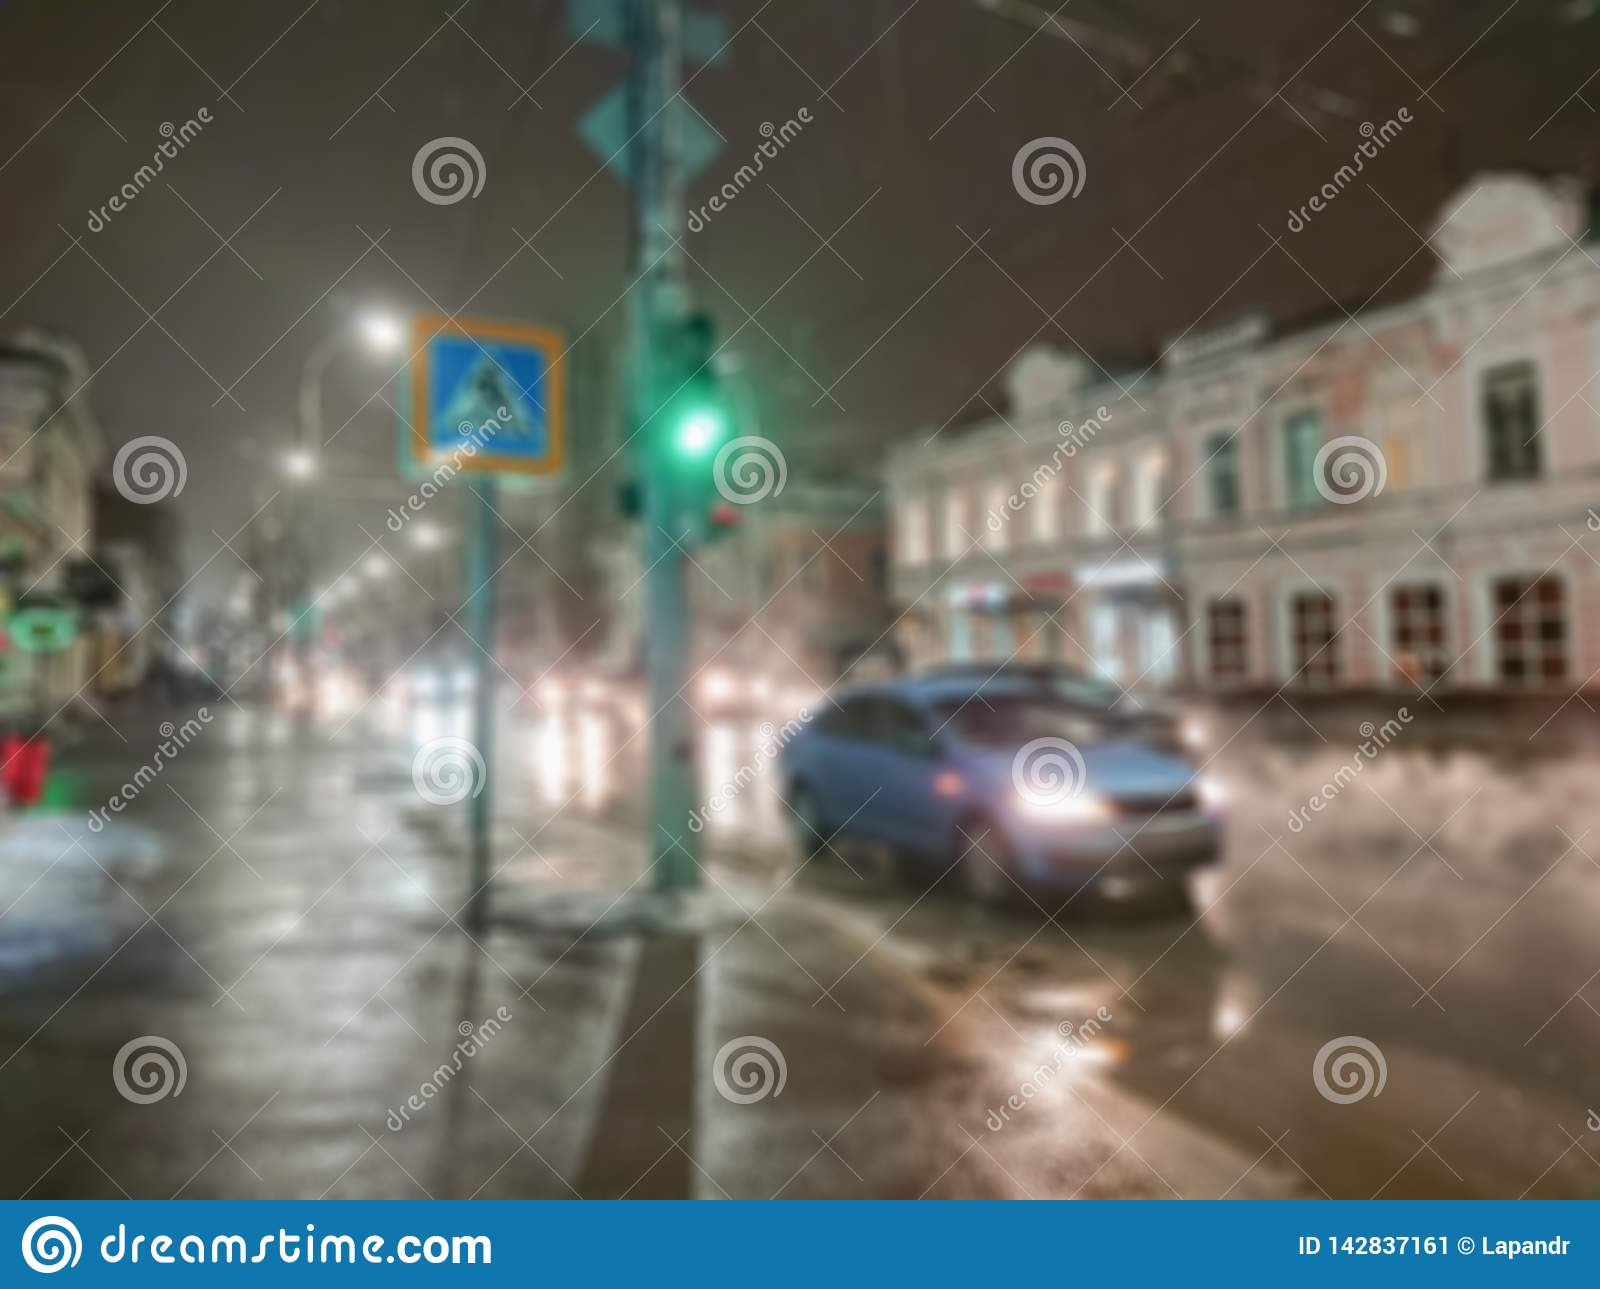 Defocused abstract image. Bokeh effect. Blurred background. Evening cityscape in rainy weather. Cars and night lights